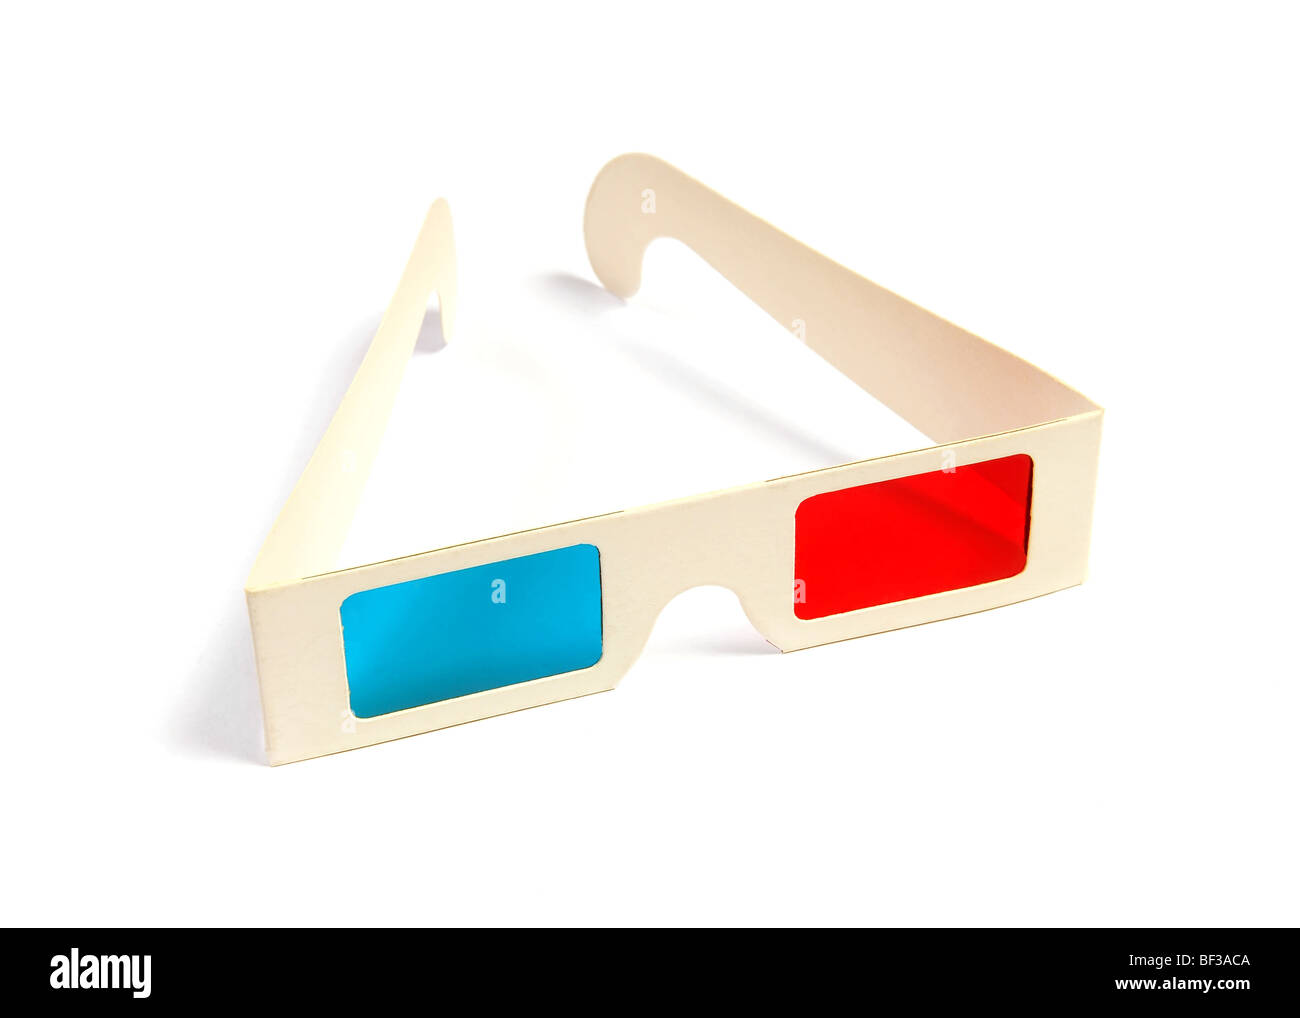 Cinema stereo glasses with blue and red eyes isolated on white - Stock Image